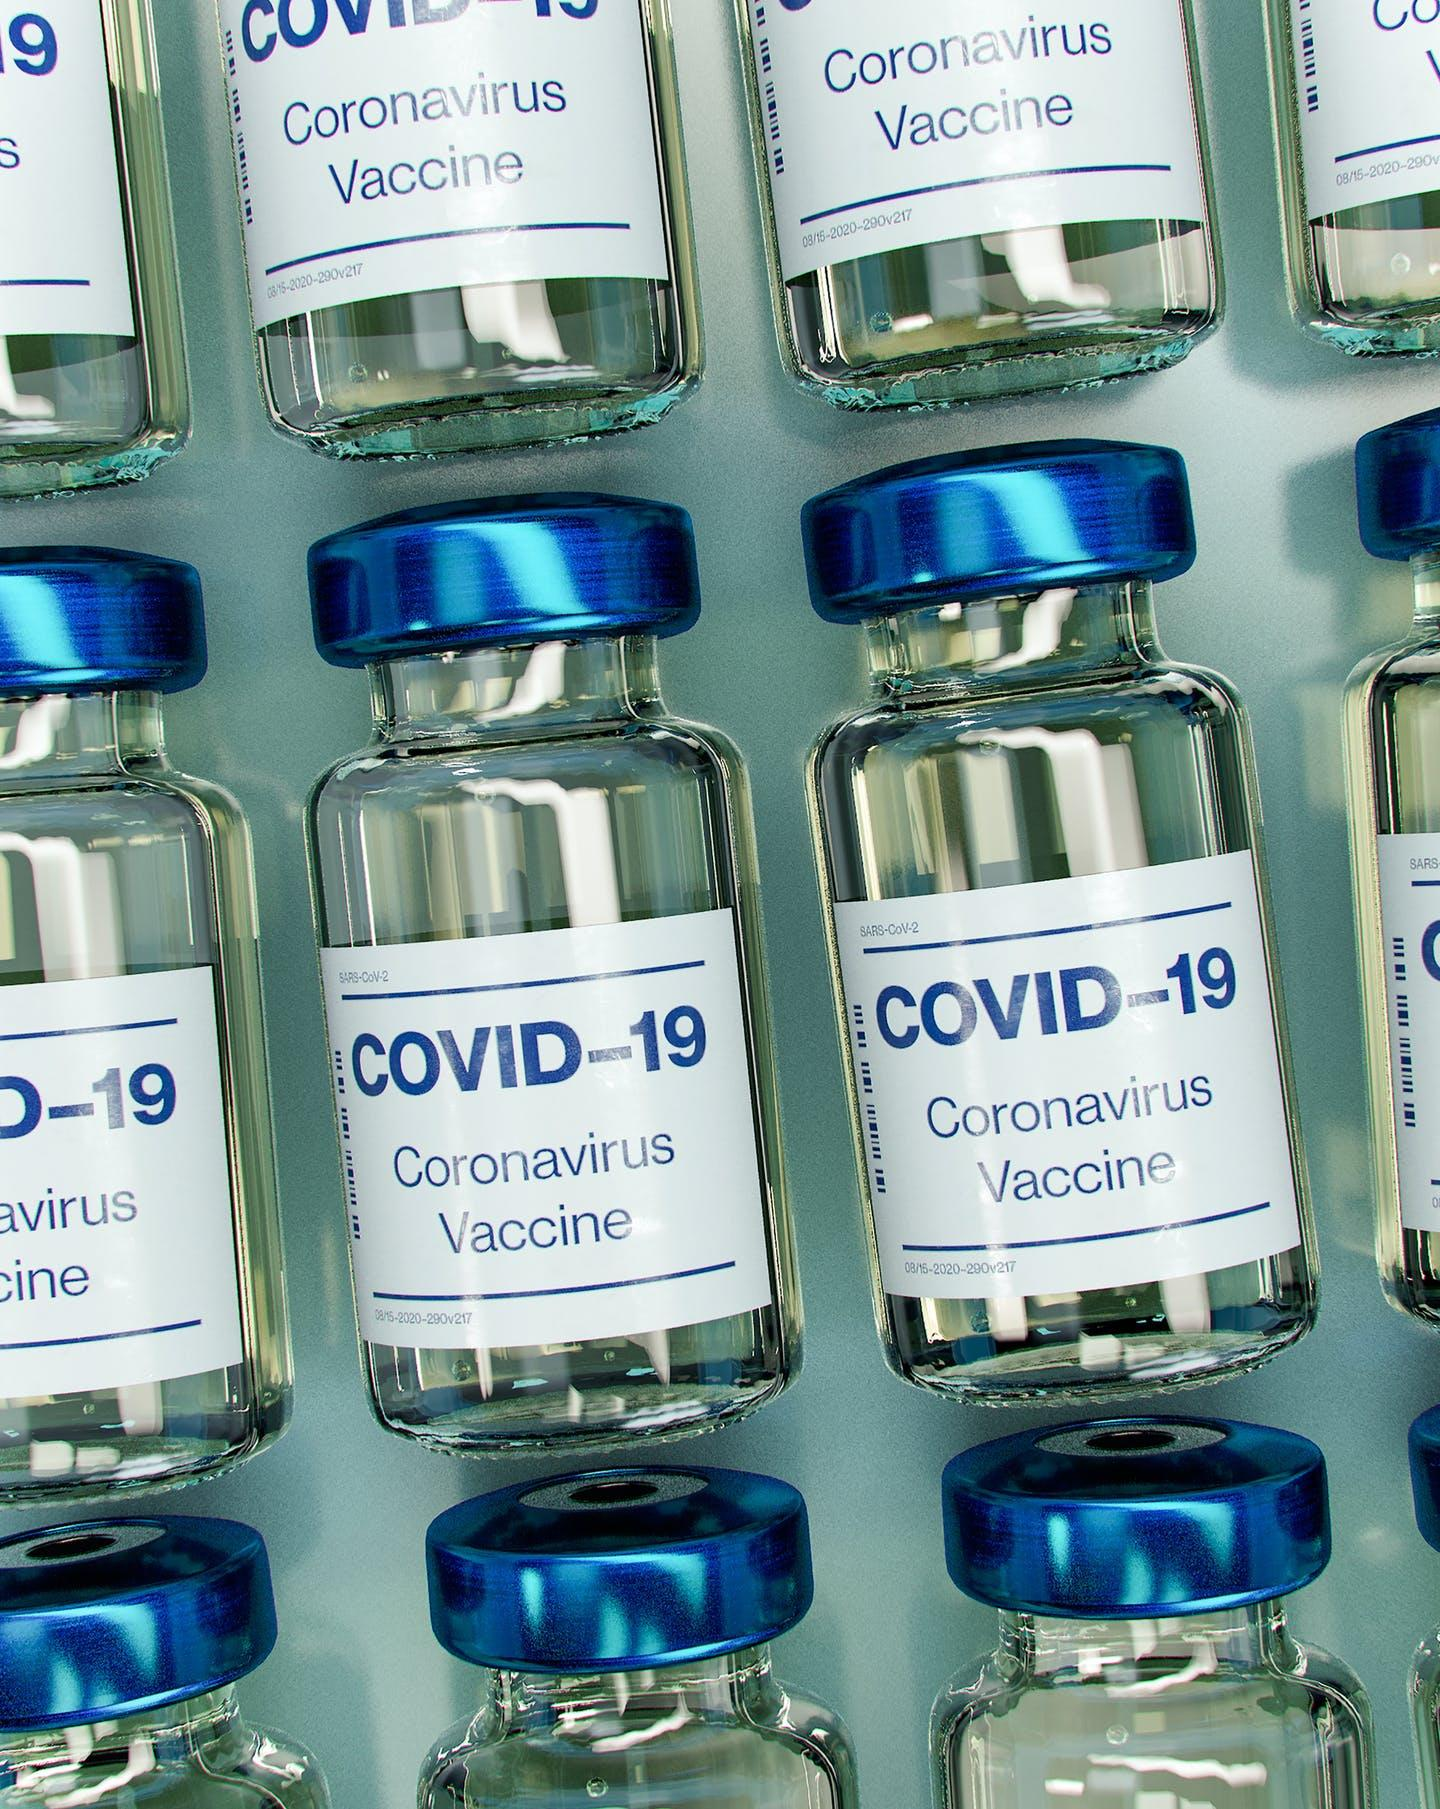 Do I need a COVID-19 booster shot? 6 questions answered on how to stay protected